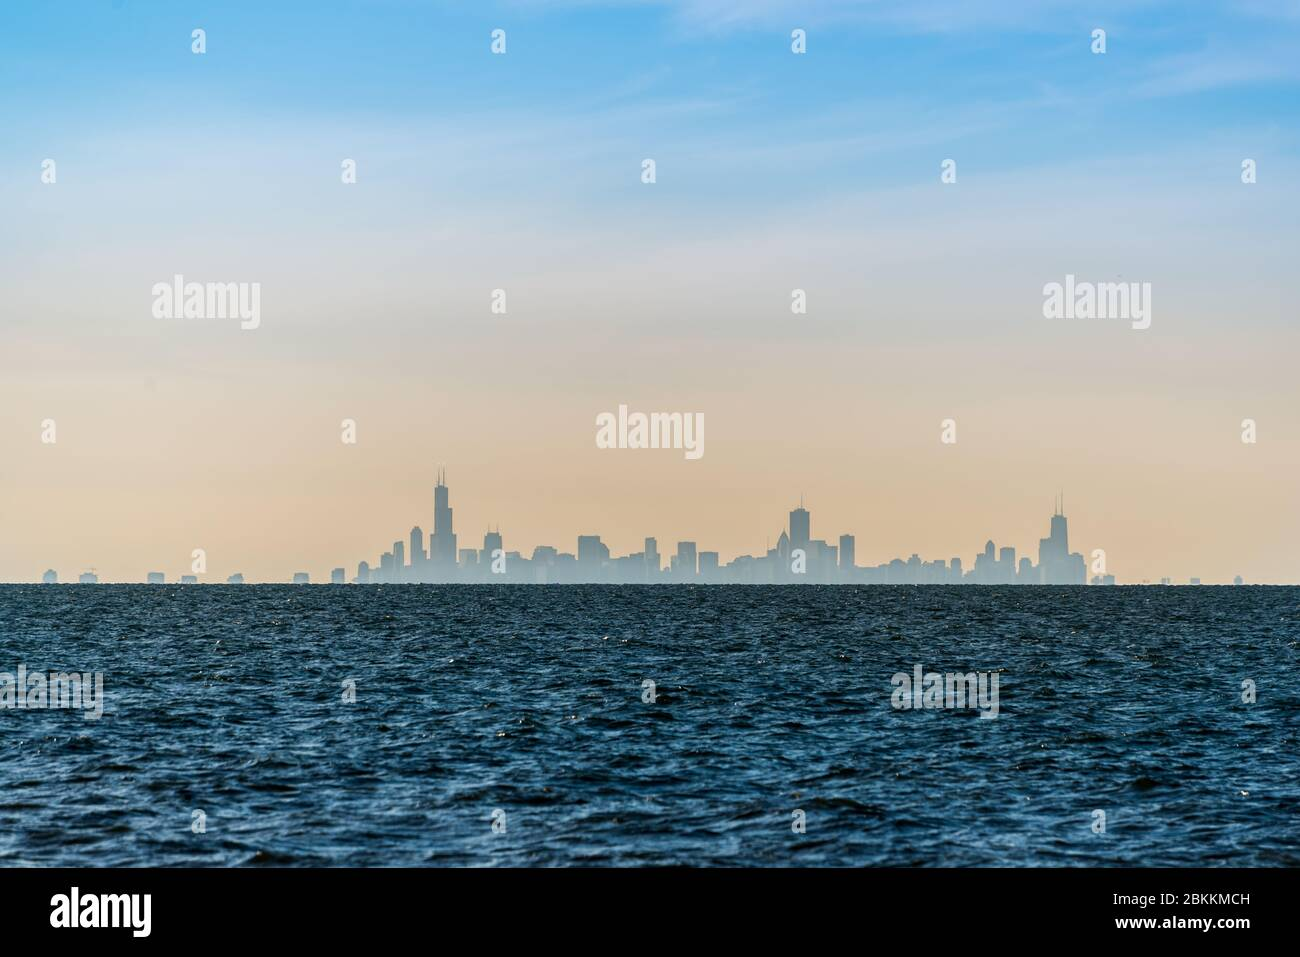 Chicago Skyline Seen From Lake Michigan Stock Photo Alamy